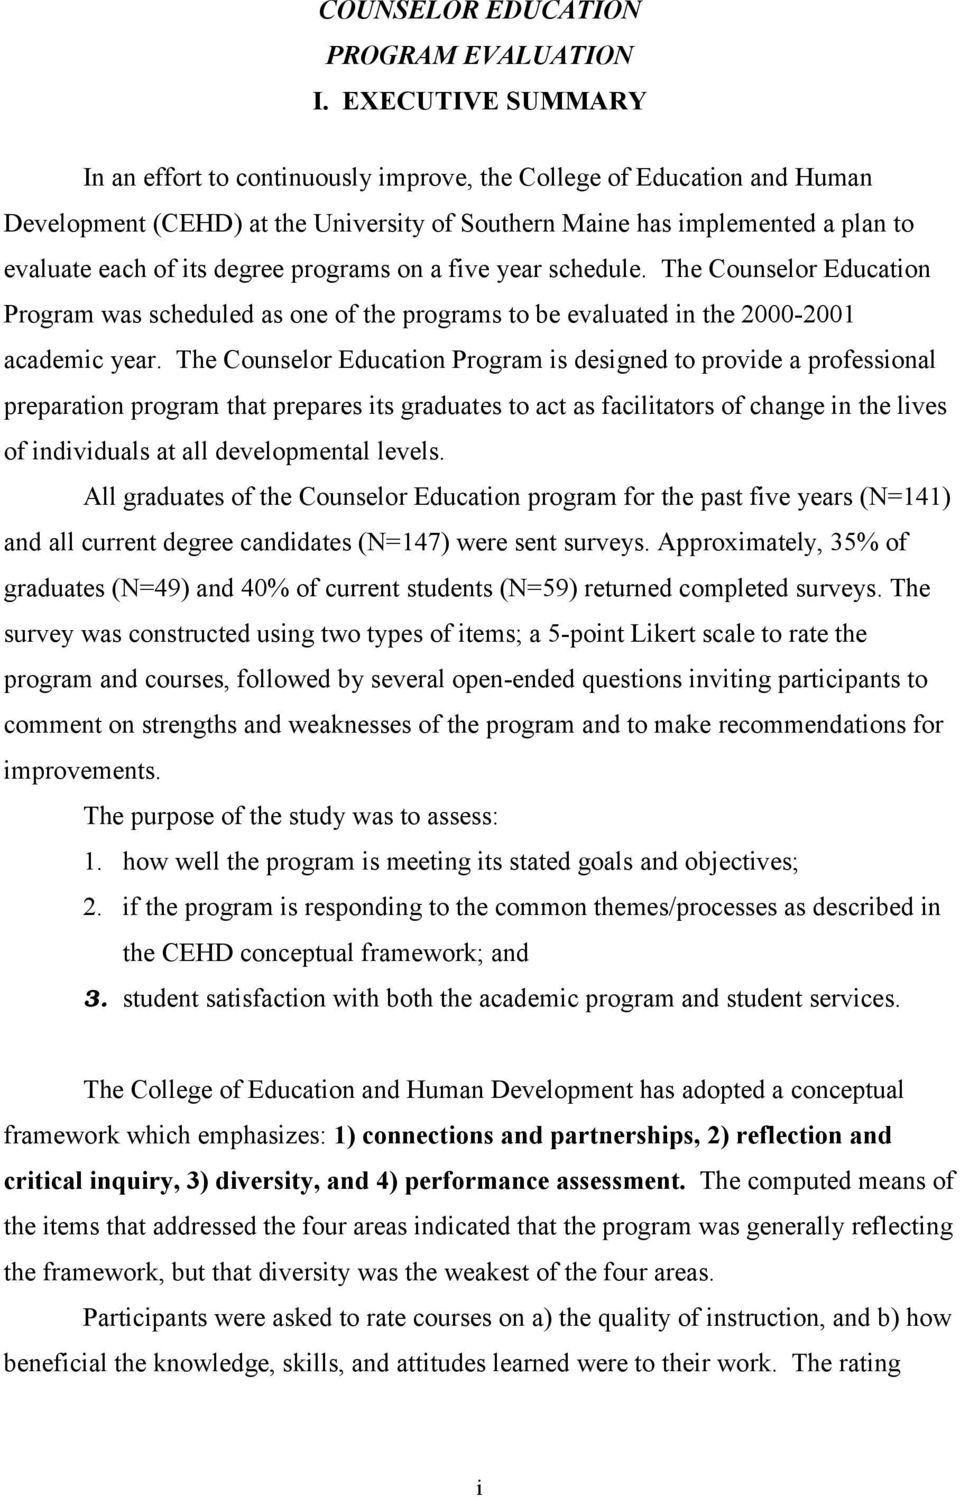 programs on a five year schedule. The Counselor Education Program was scheduled as one of the programs to be evaluated in the 2000-2001 academic year.